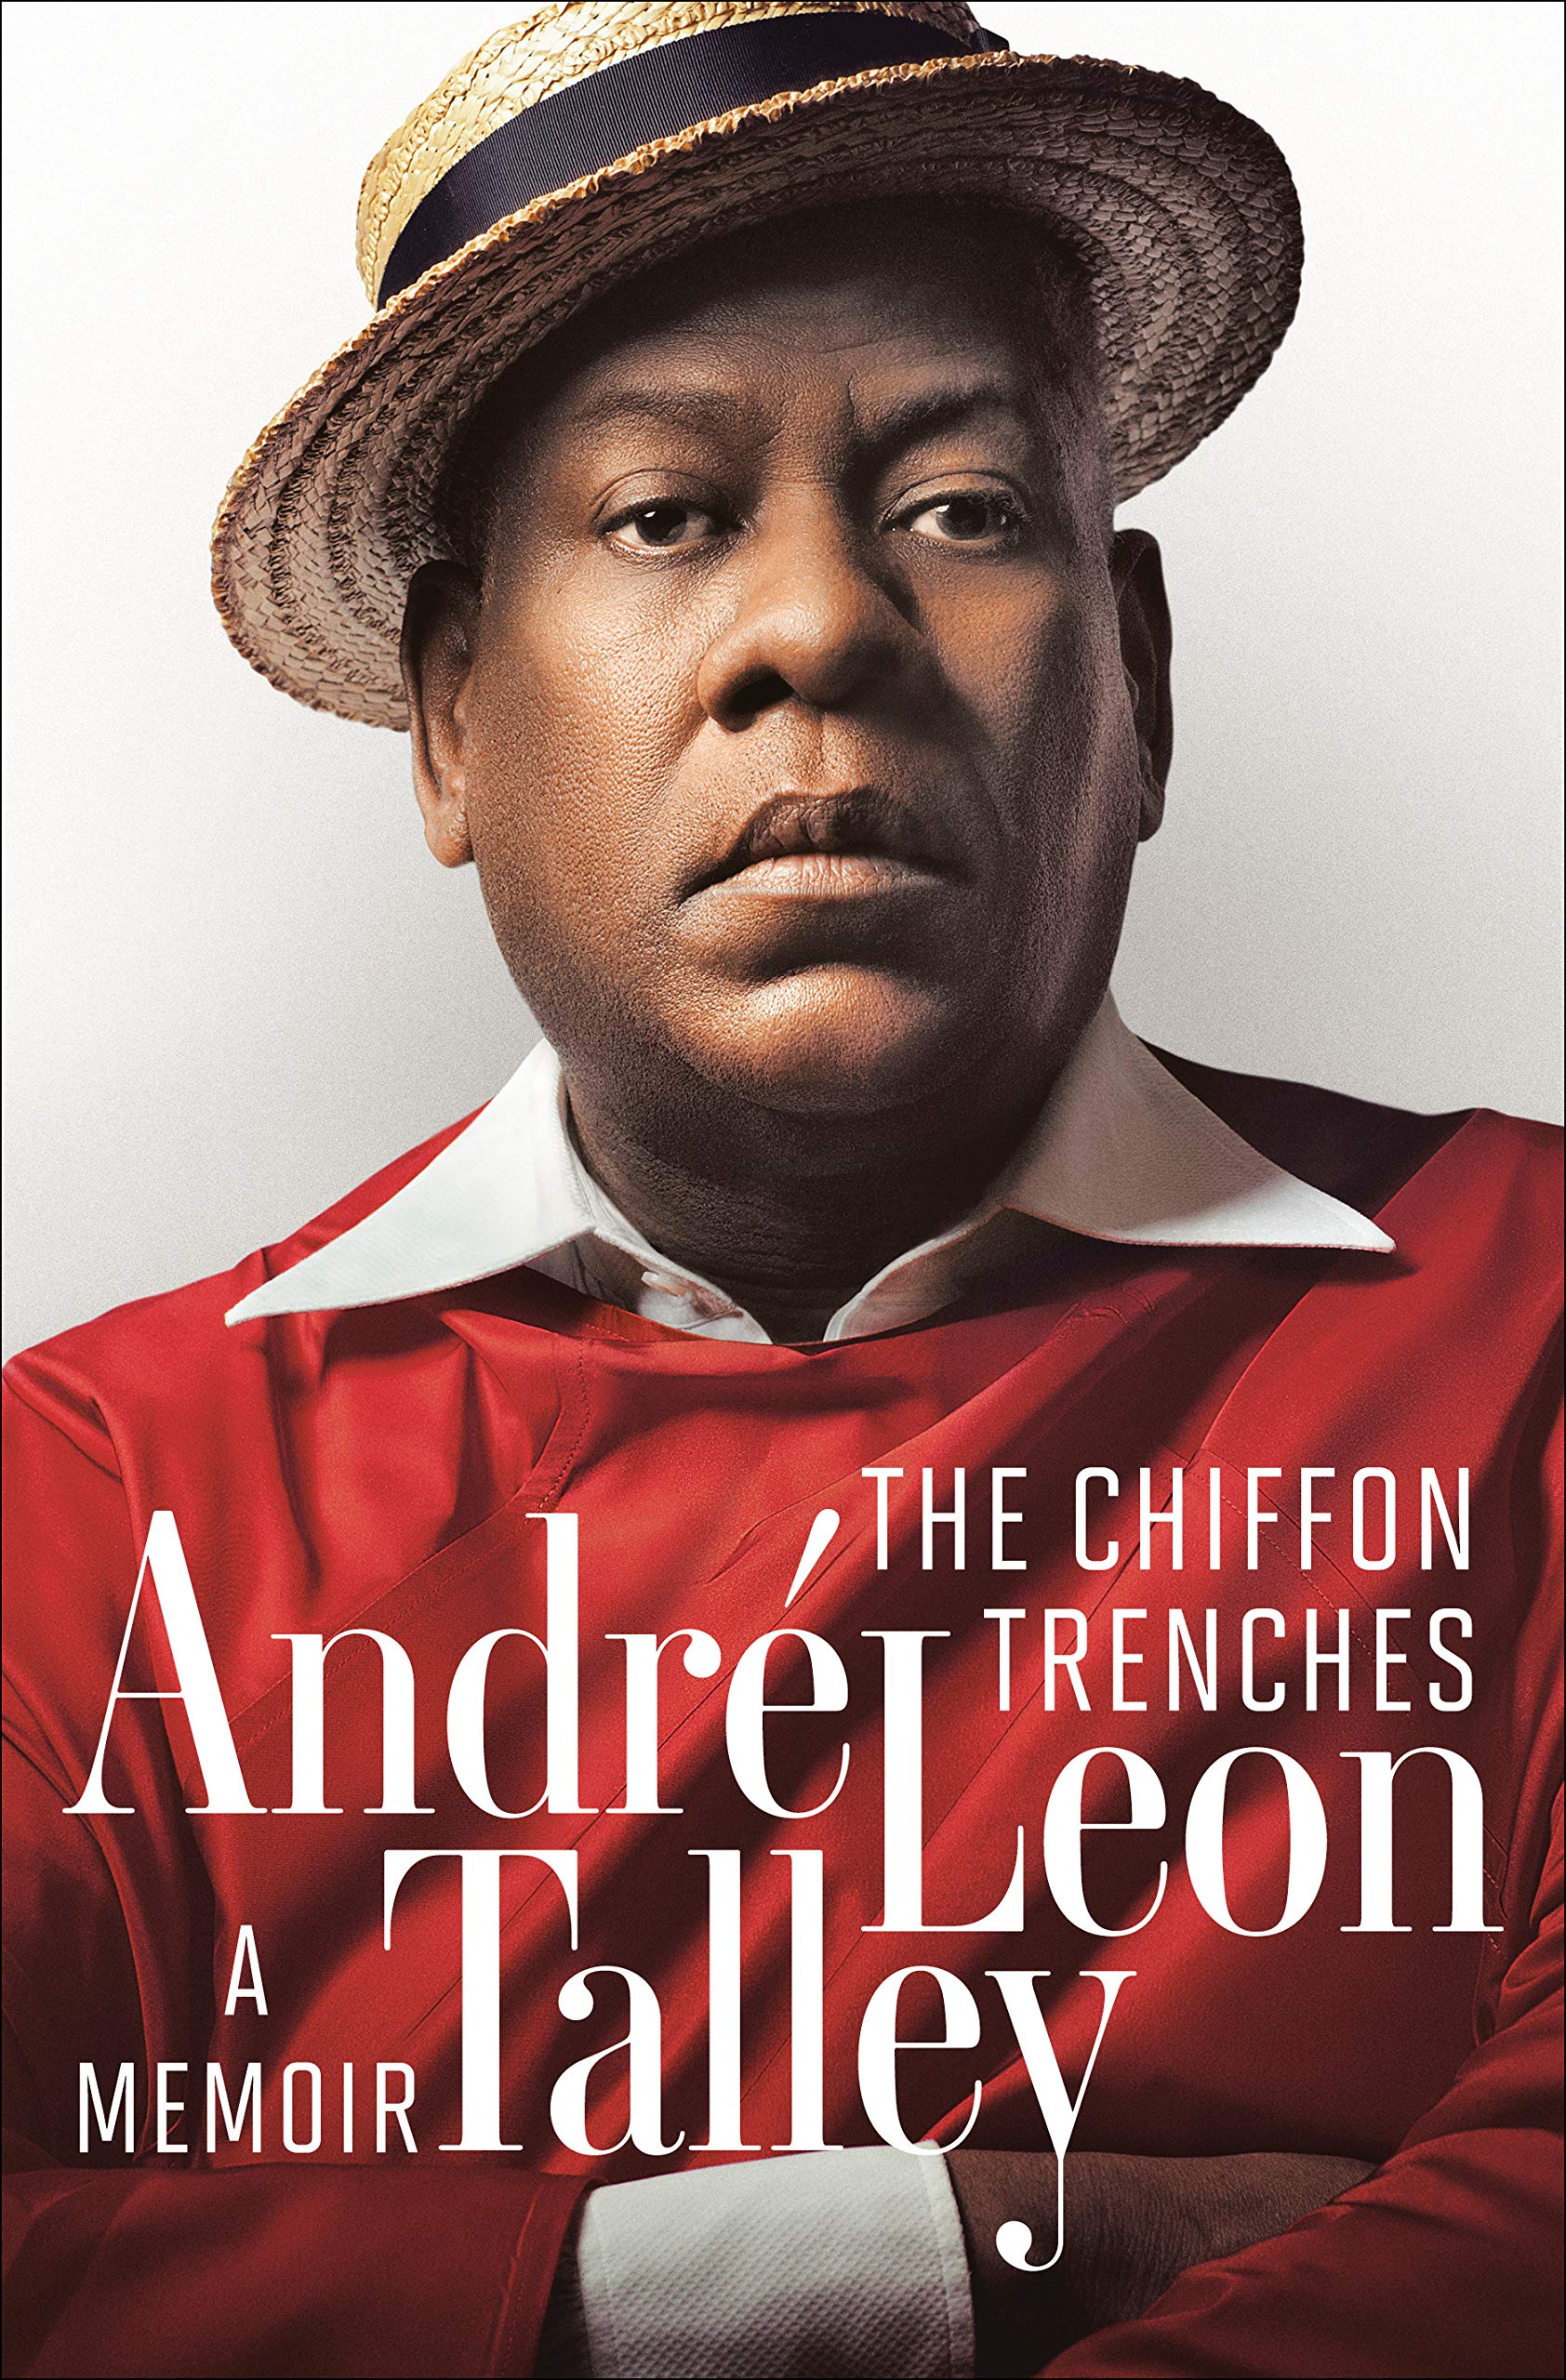 Biography: The Chiffon Trenches